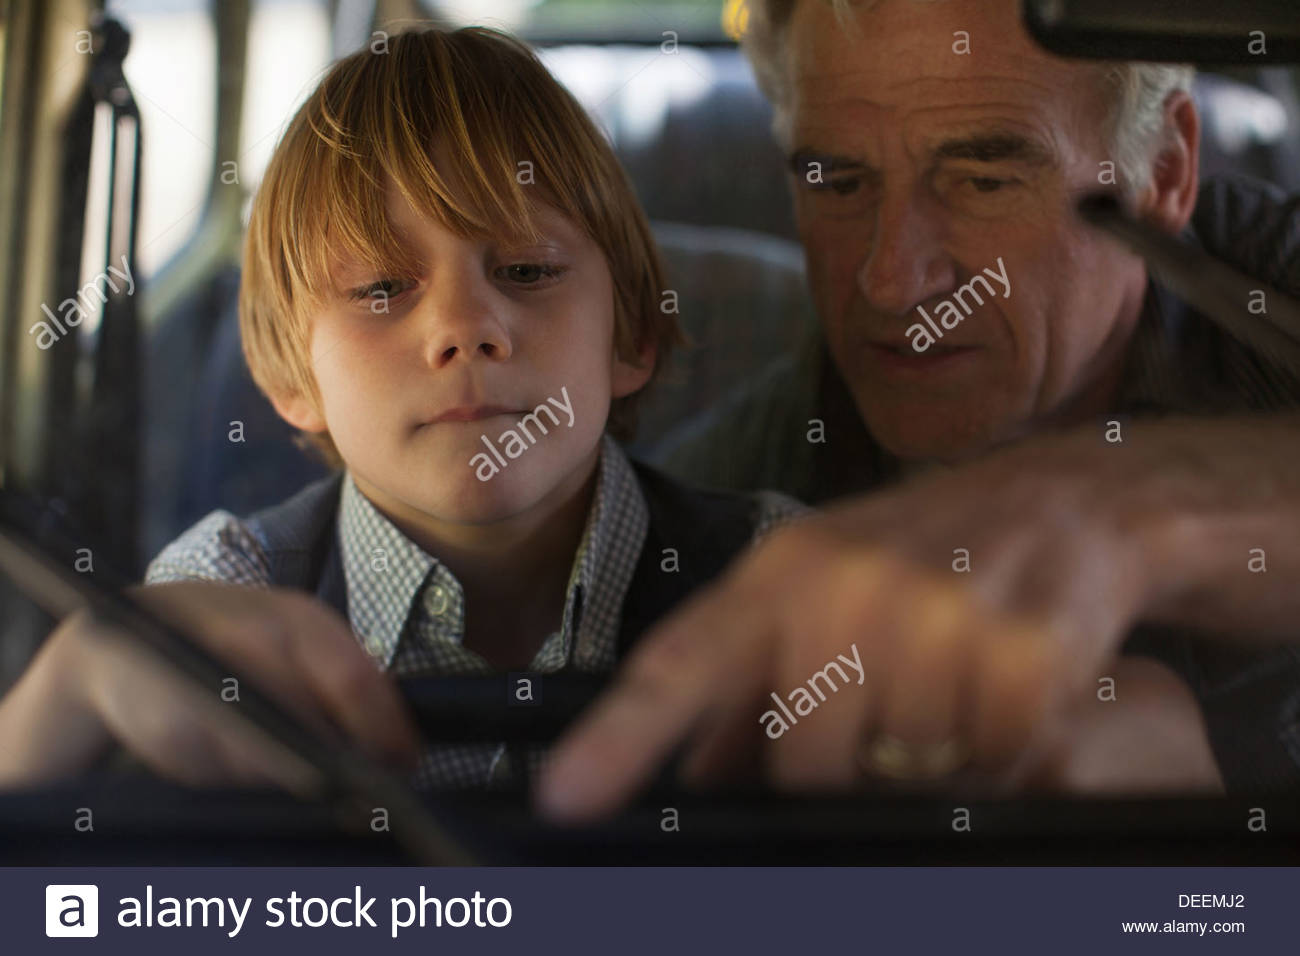 Grandfather and grandson behind steering wheel - Stock Image